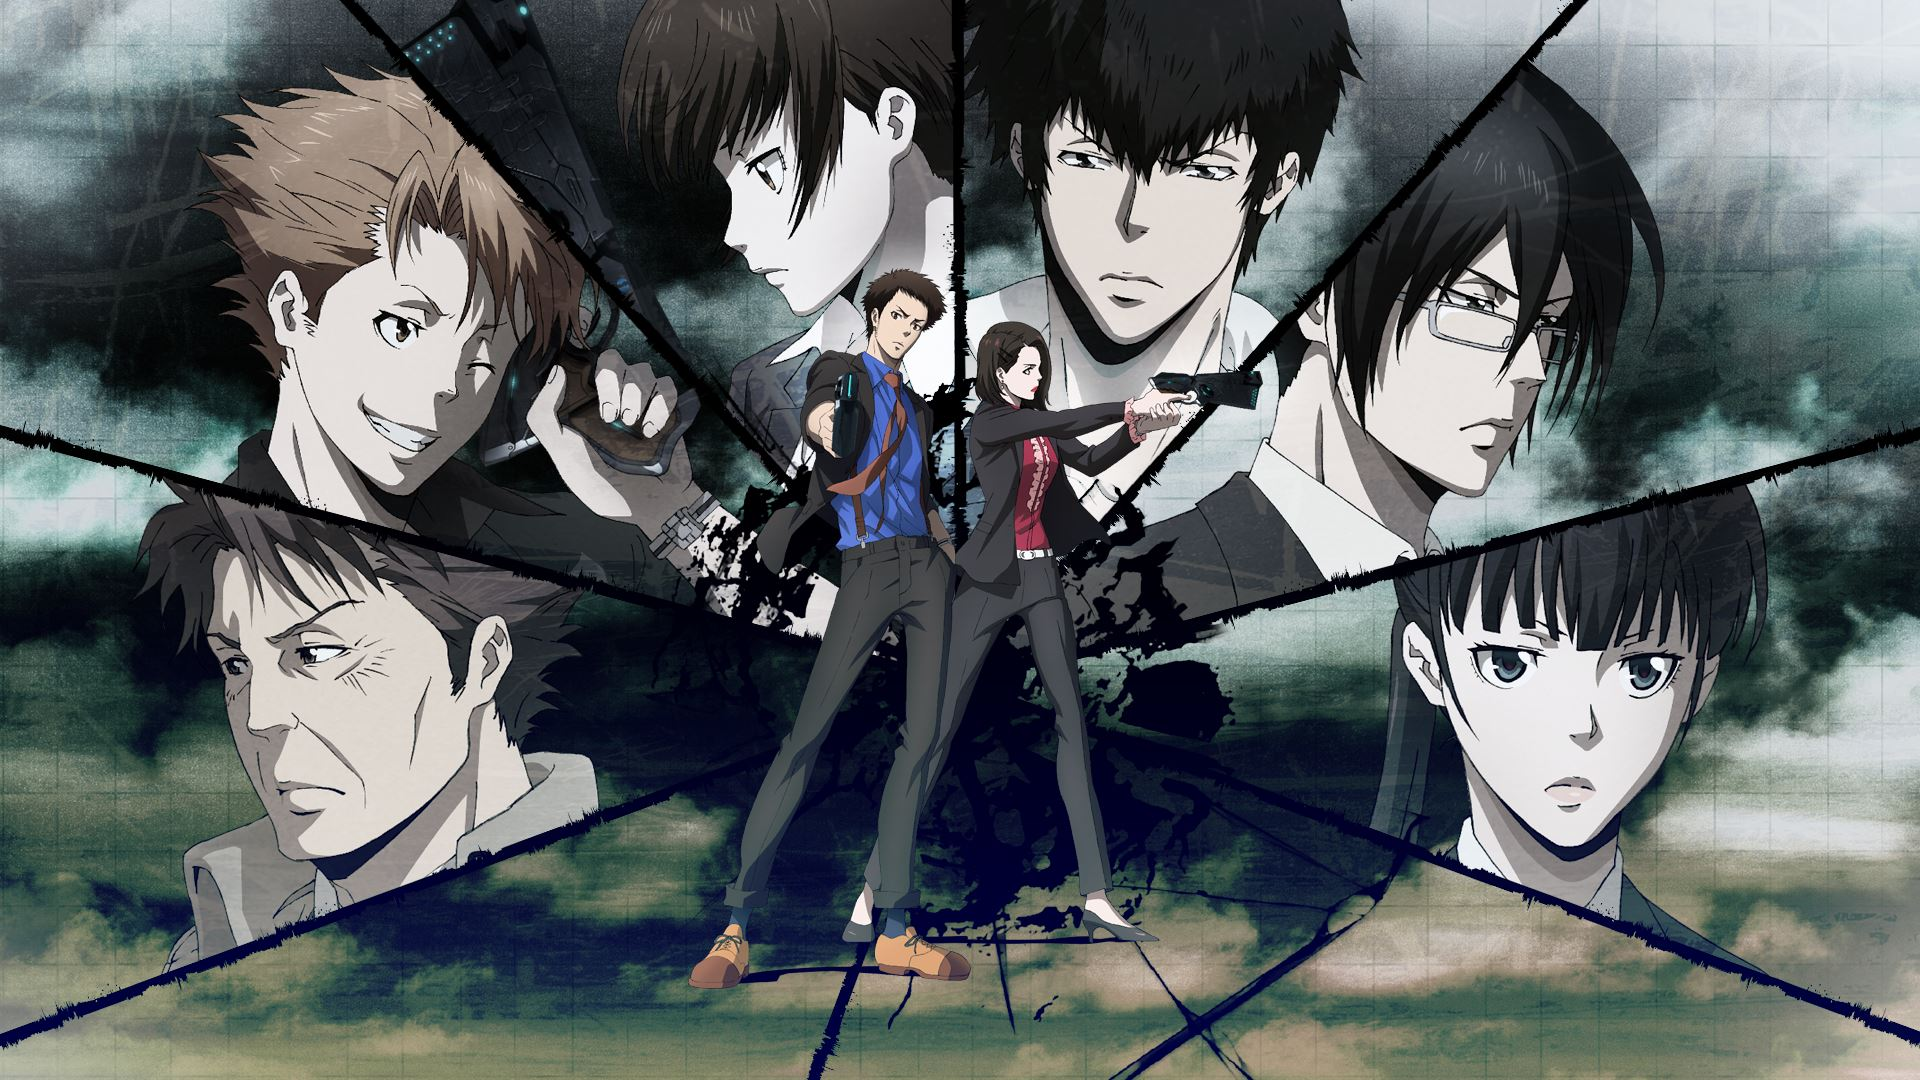 Psycho Pass Movie Wallpaper 8   1920 X 1080 stmednet 1920x1080